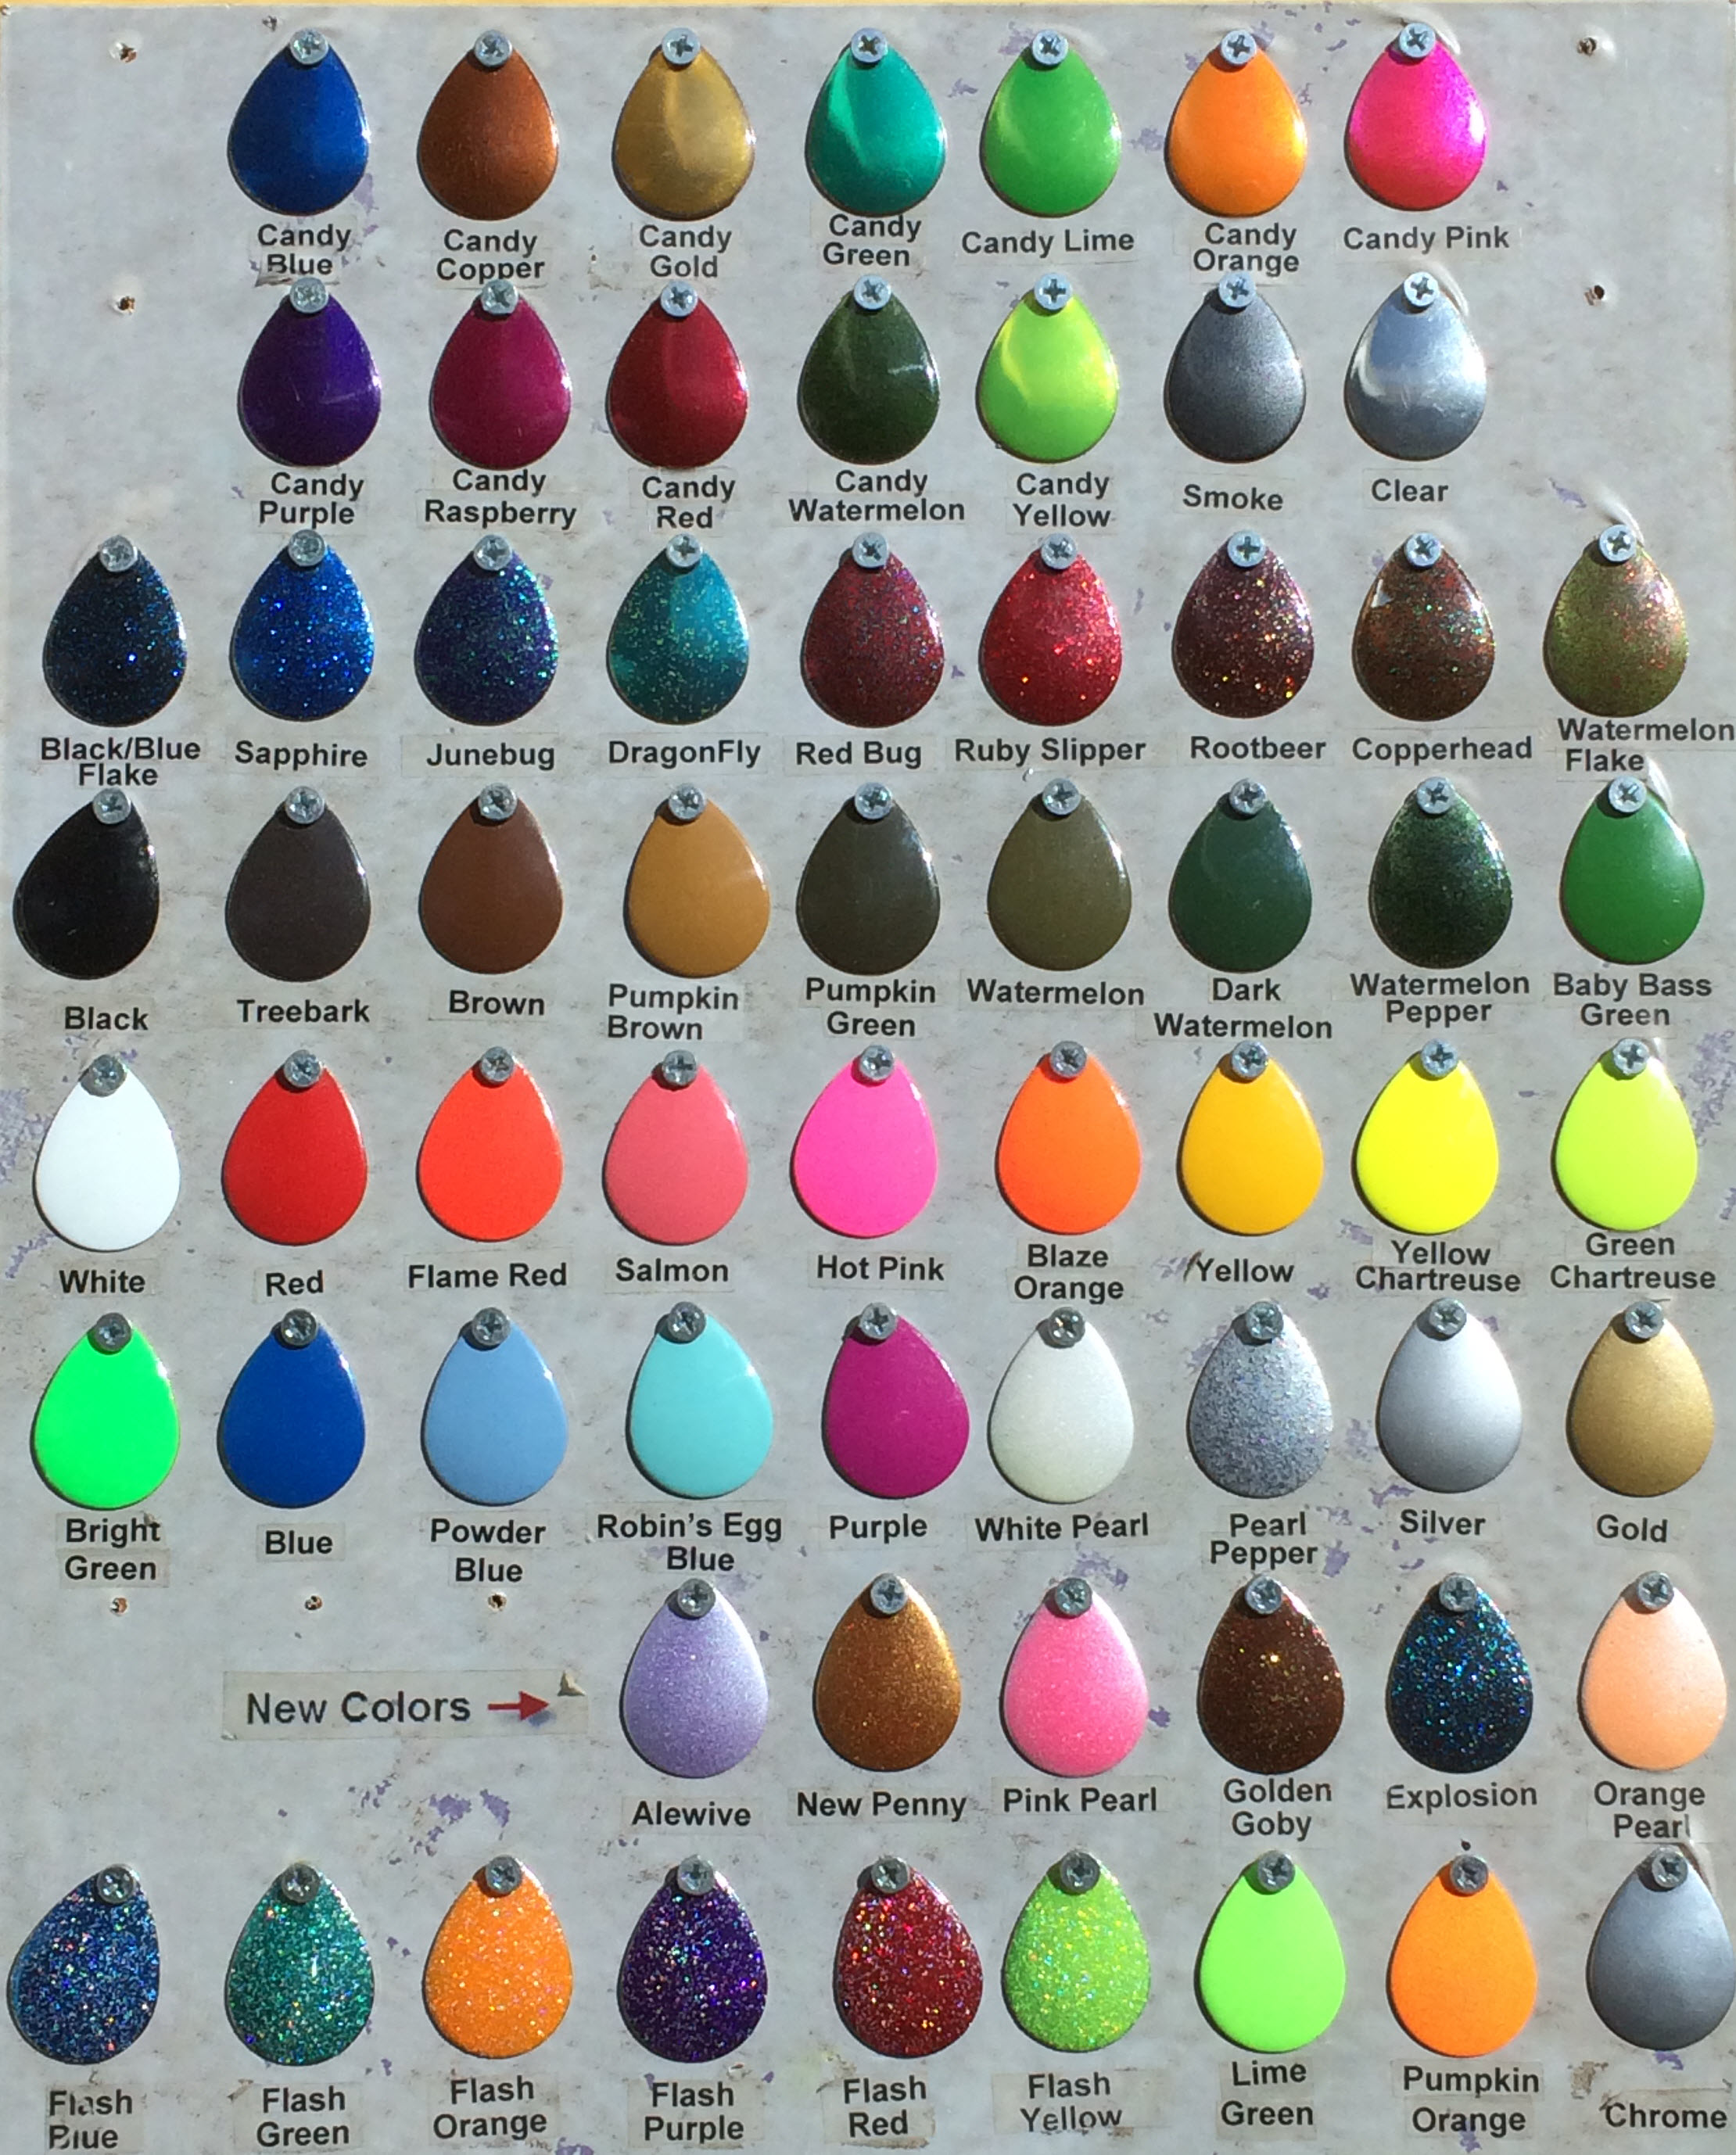 All Candy Paint Colors Image Gallery HCPR